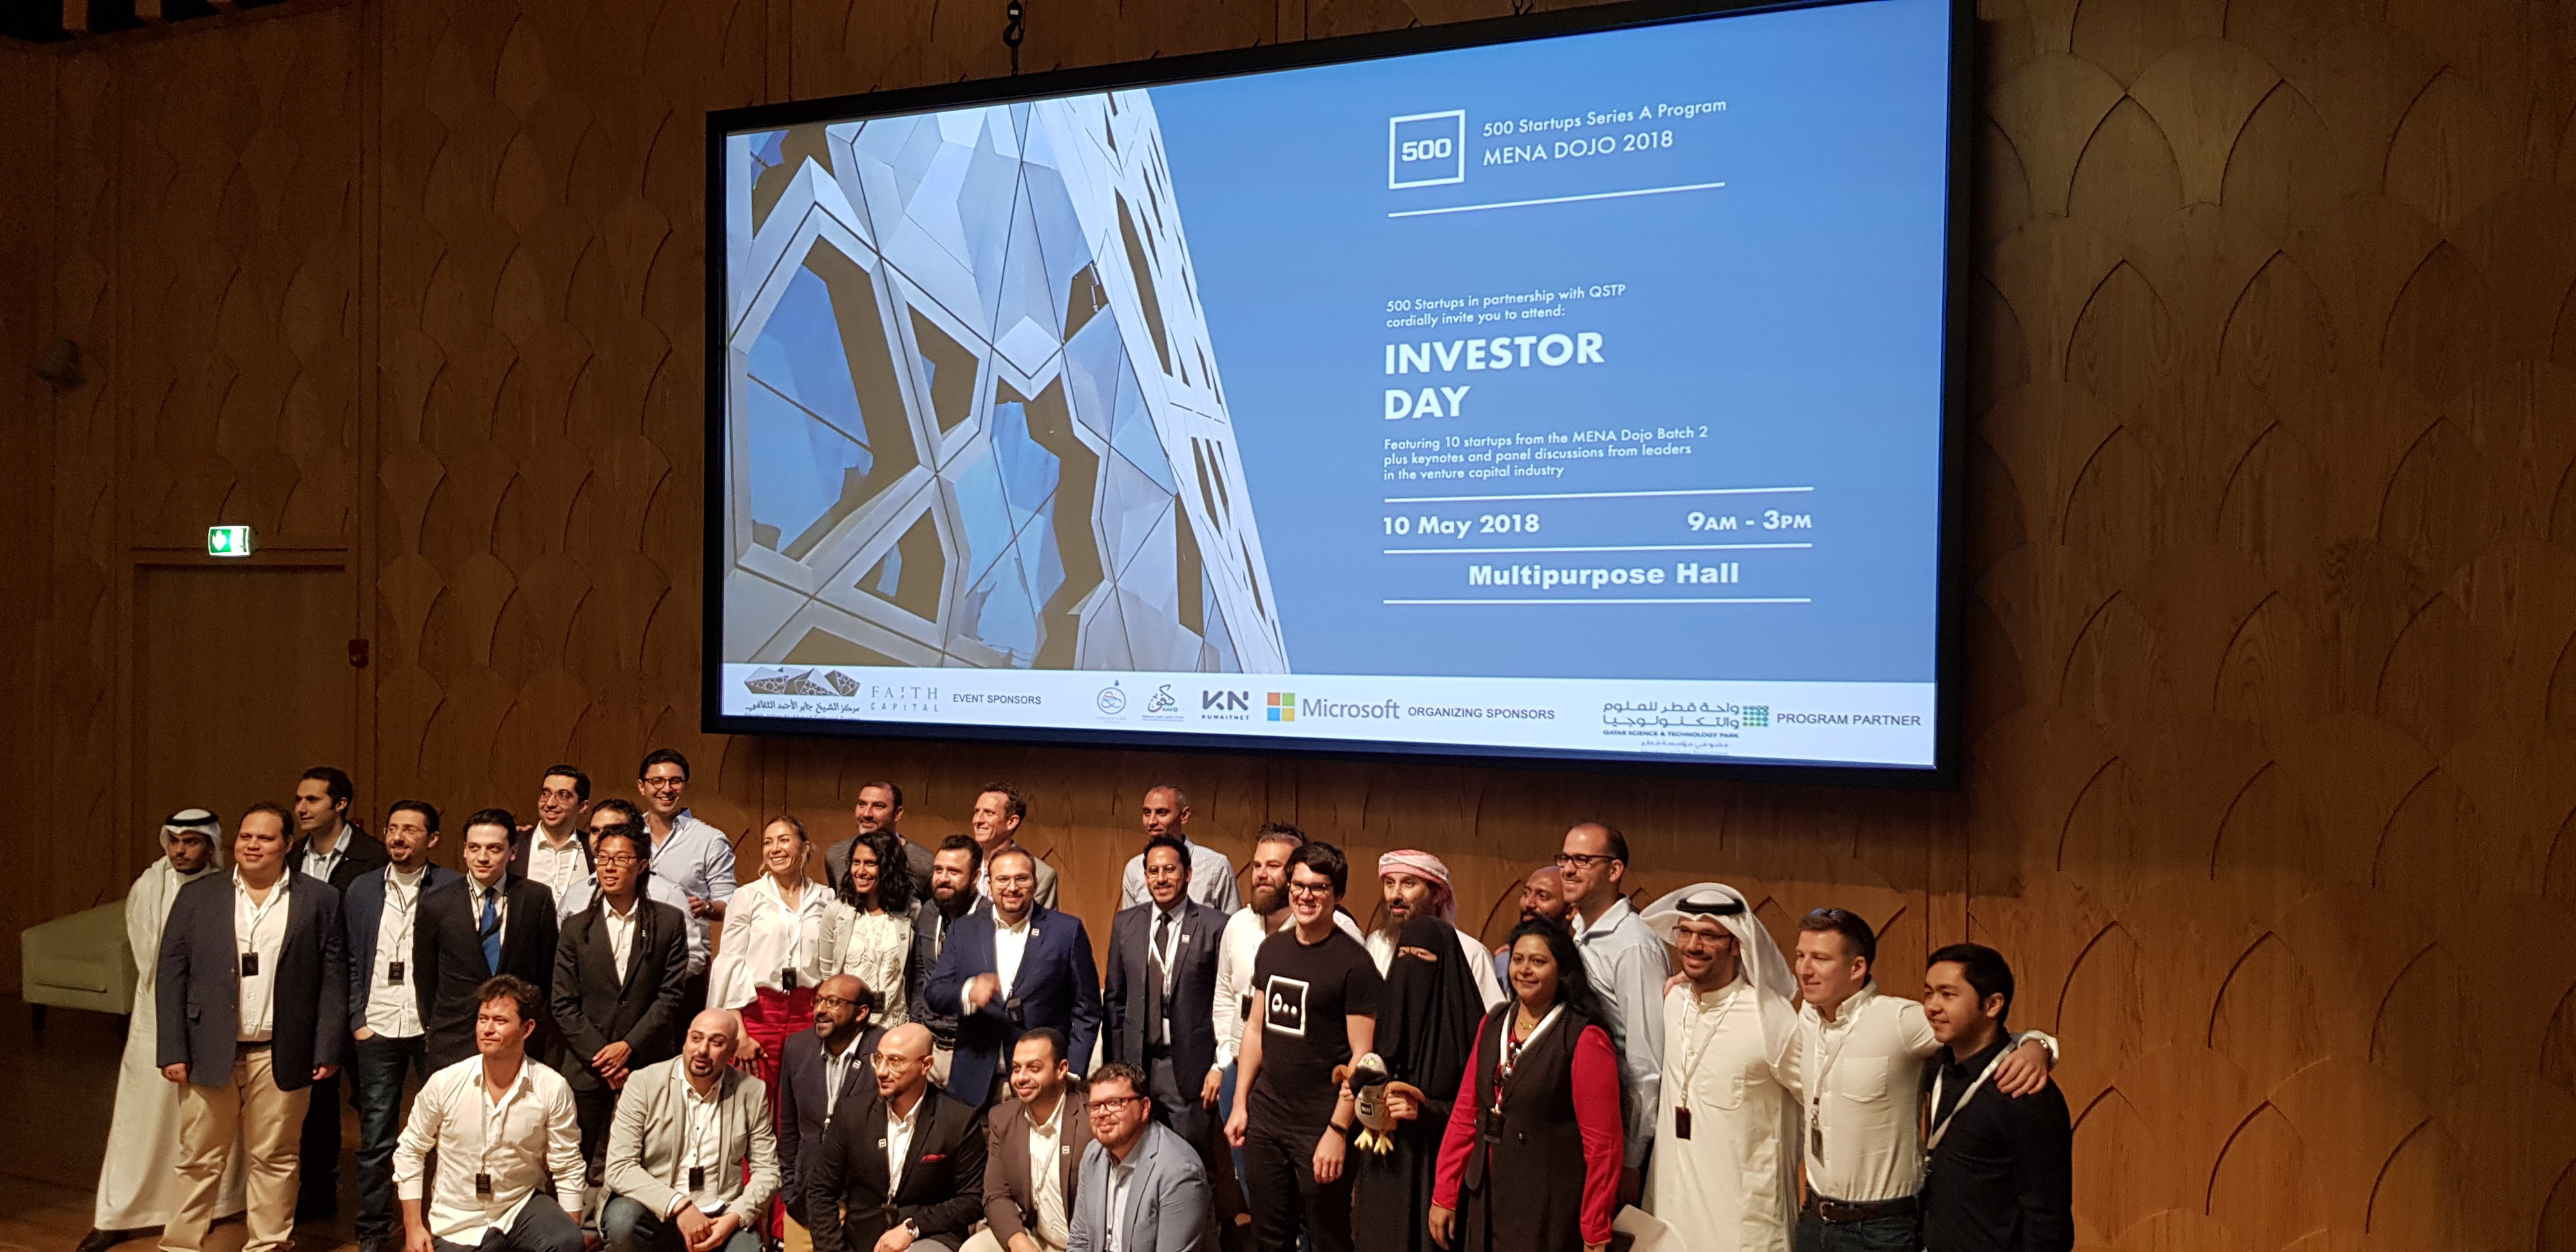 2018: The Year of Digital Health in MENA - Dr  Mussaad M  Al